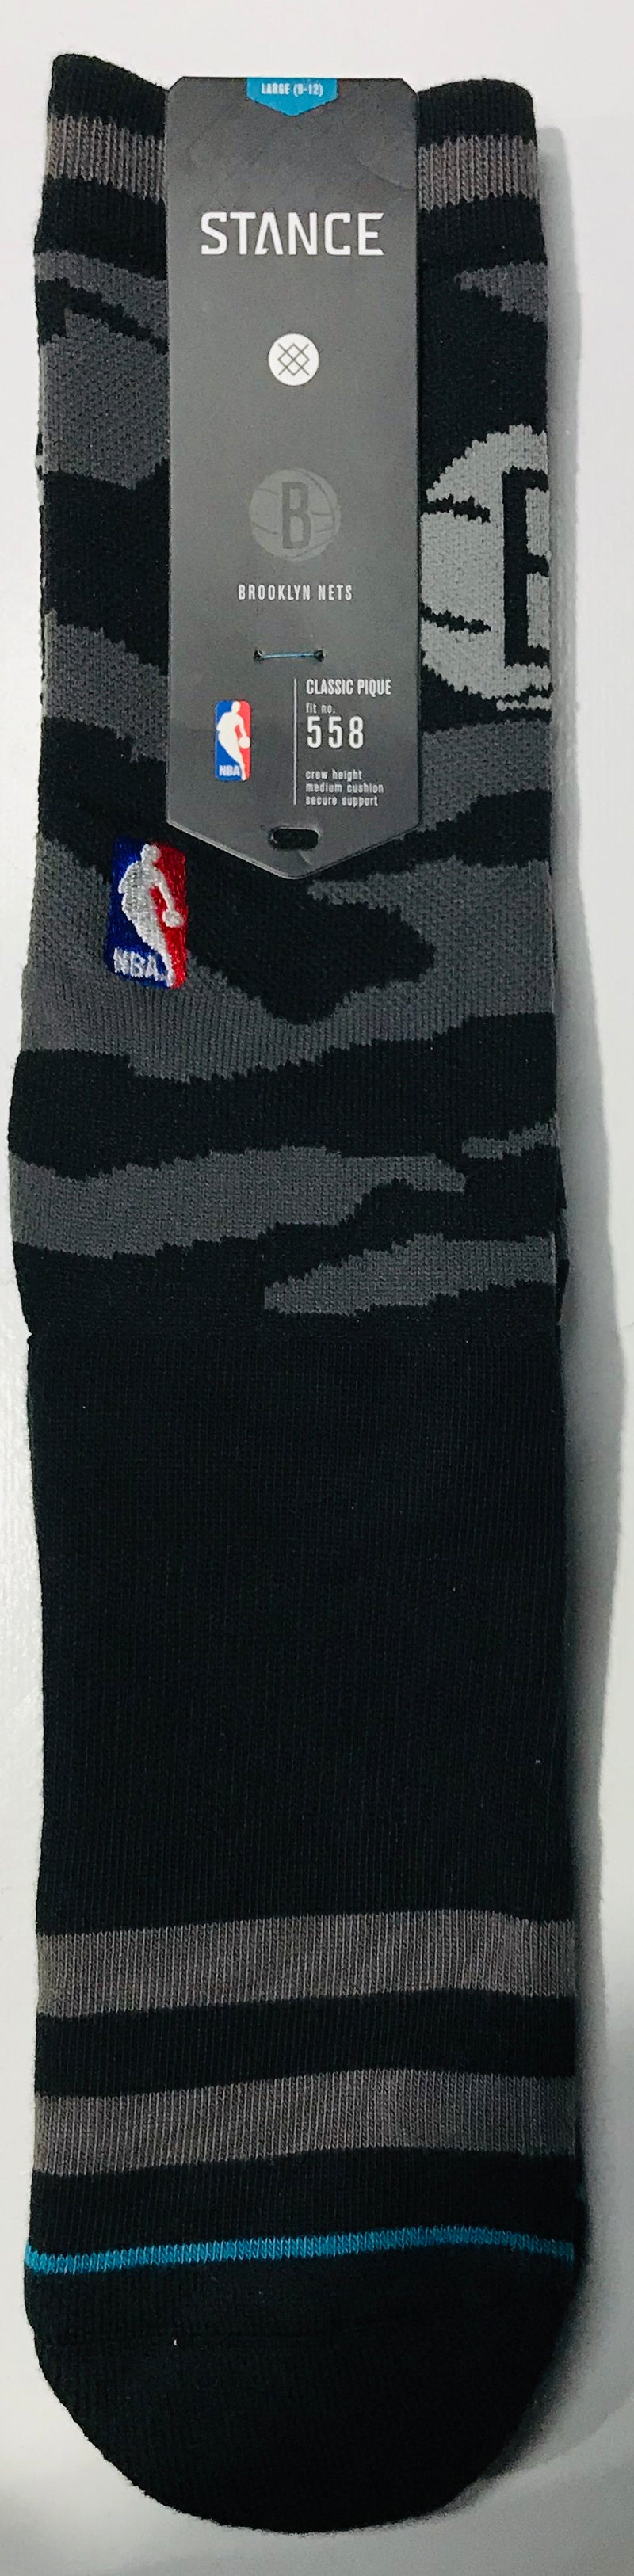 Stance Nightfall Brooklyn Nets Black Crew Socks